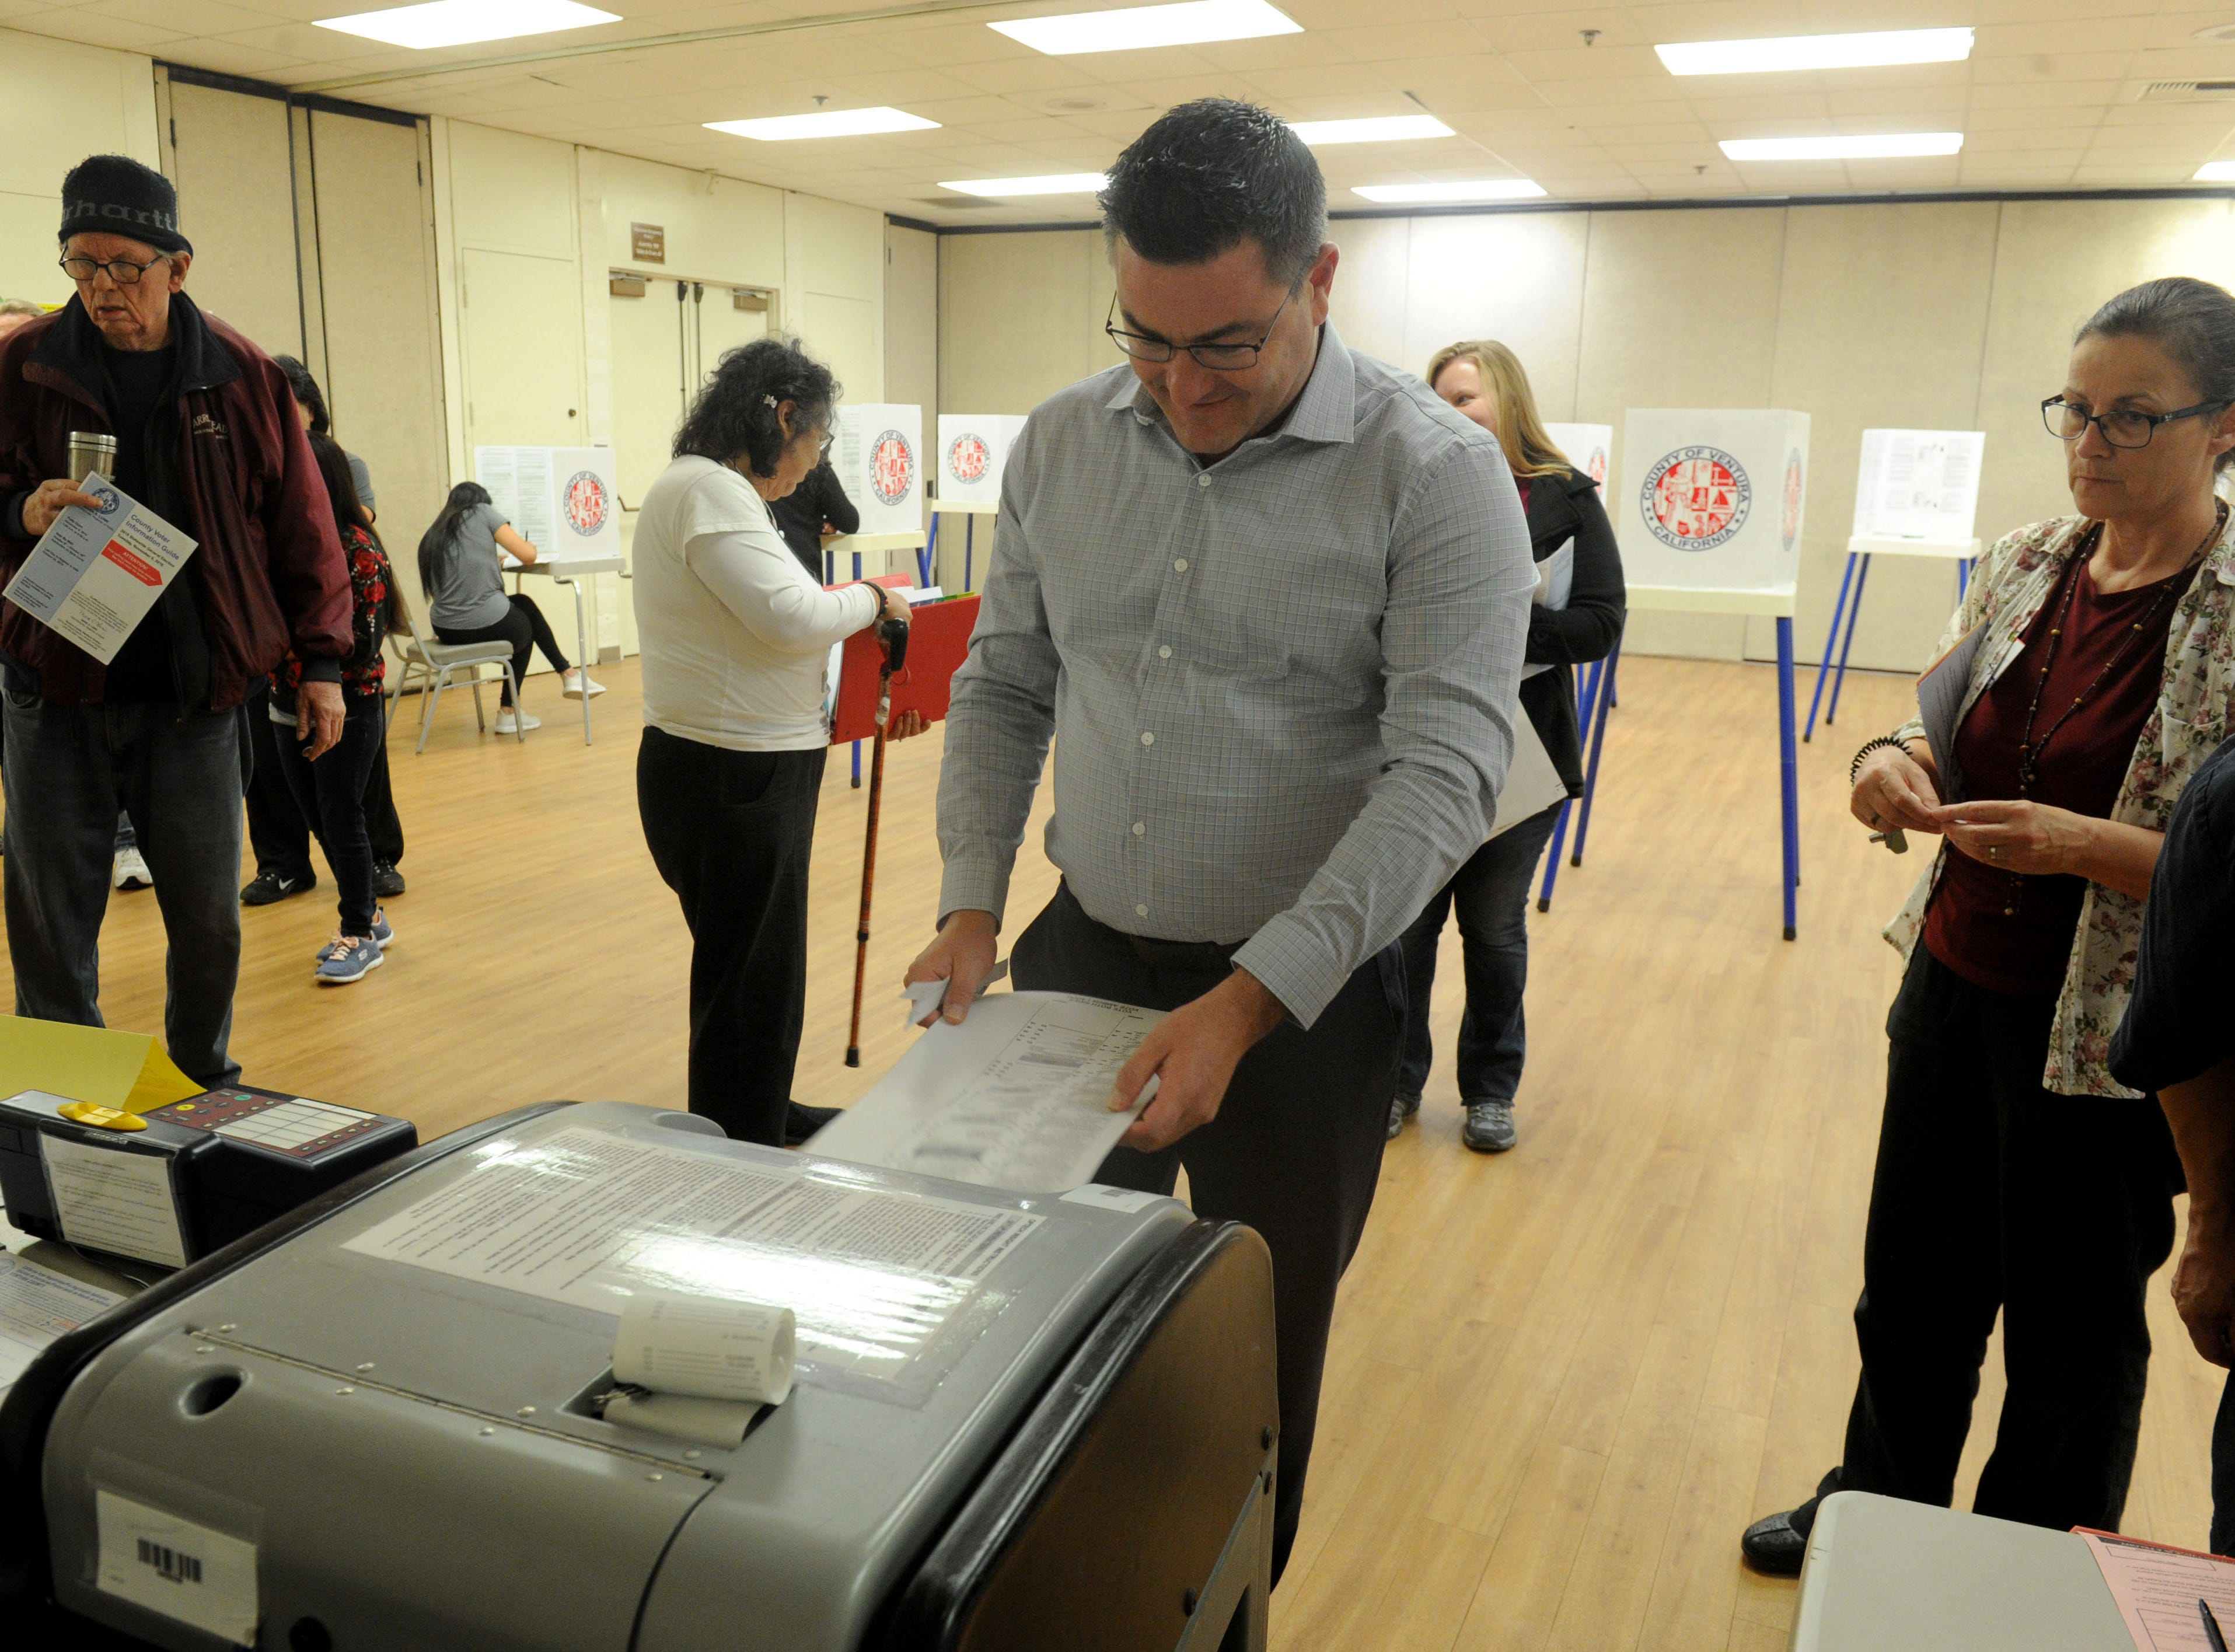 John Wilner finishes voting in the morning at Ventura Avenue Adult Center. The center had a line of about 20 people.